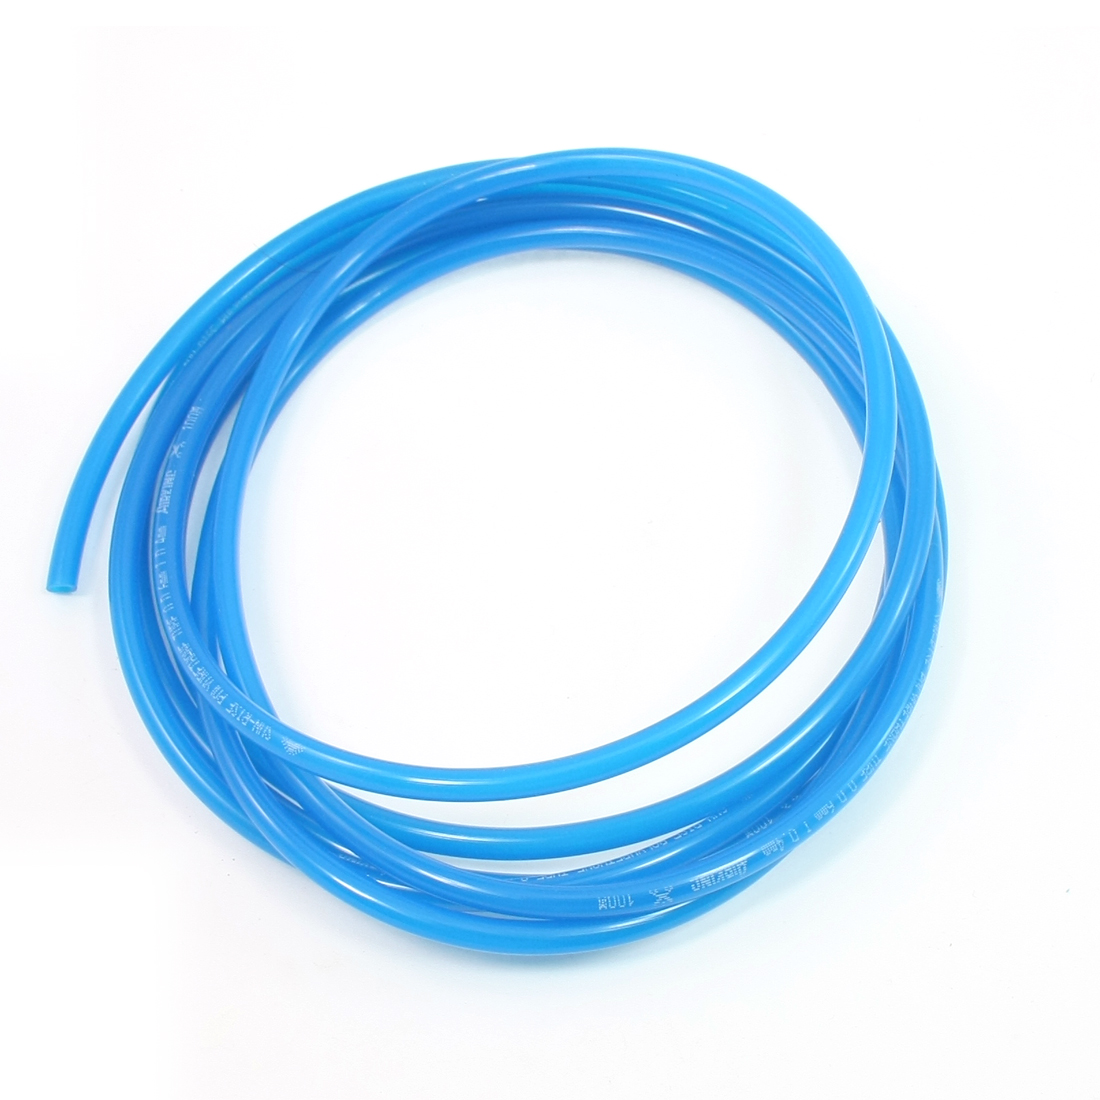 6mm OD 4mm Inner Dia 1.3mm Wall Thickness Air PU Tube Pipe Hose 3.1M Blue